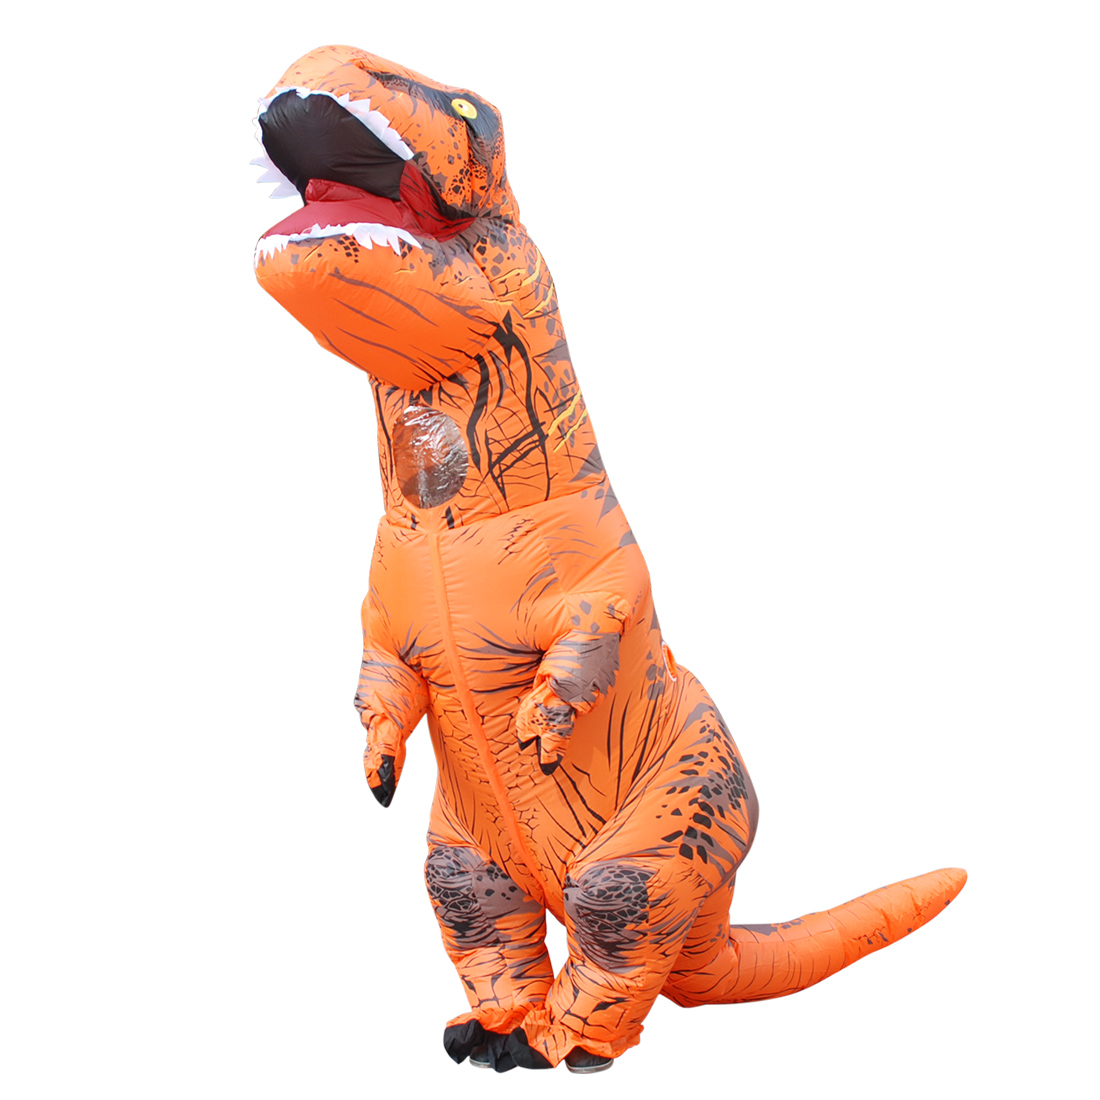 Disfraces Adultos Orange T-REX Costumes Inflatable Dinosaur Costume Halloween Costume for Women Tyrannosaurus Jumpsuit Carnival